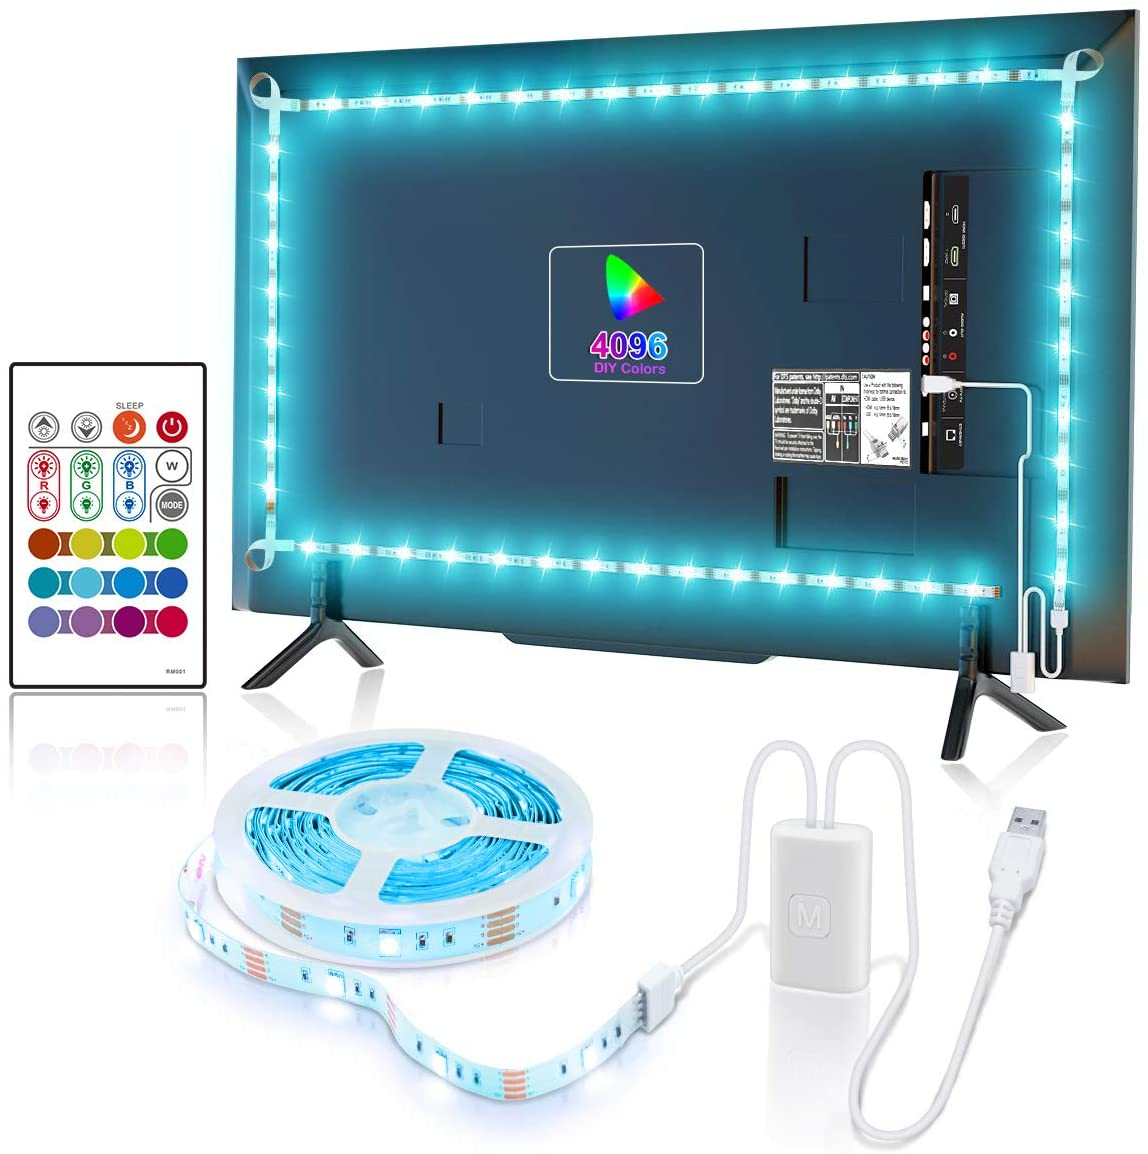 YEEMAYLUX TV LED Backlight, TV Light with 2 Control Methods for 32-58 inch TV/Monitor, SMD5050 RGB Multicolored LED Light Strip with 4096 Color for Game Room,Home Theatre,Bring Better Visual Effect